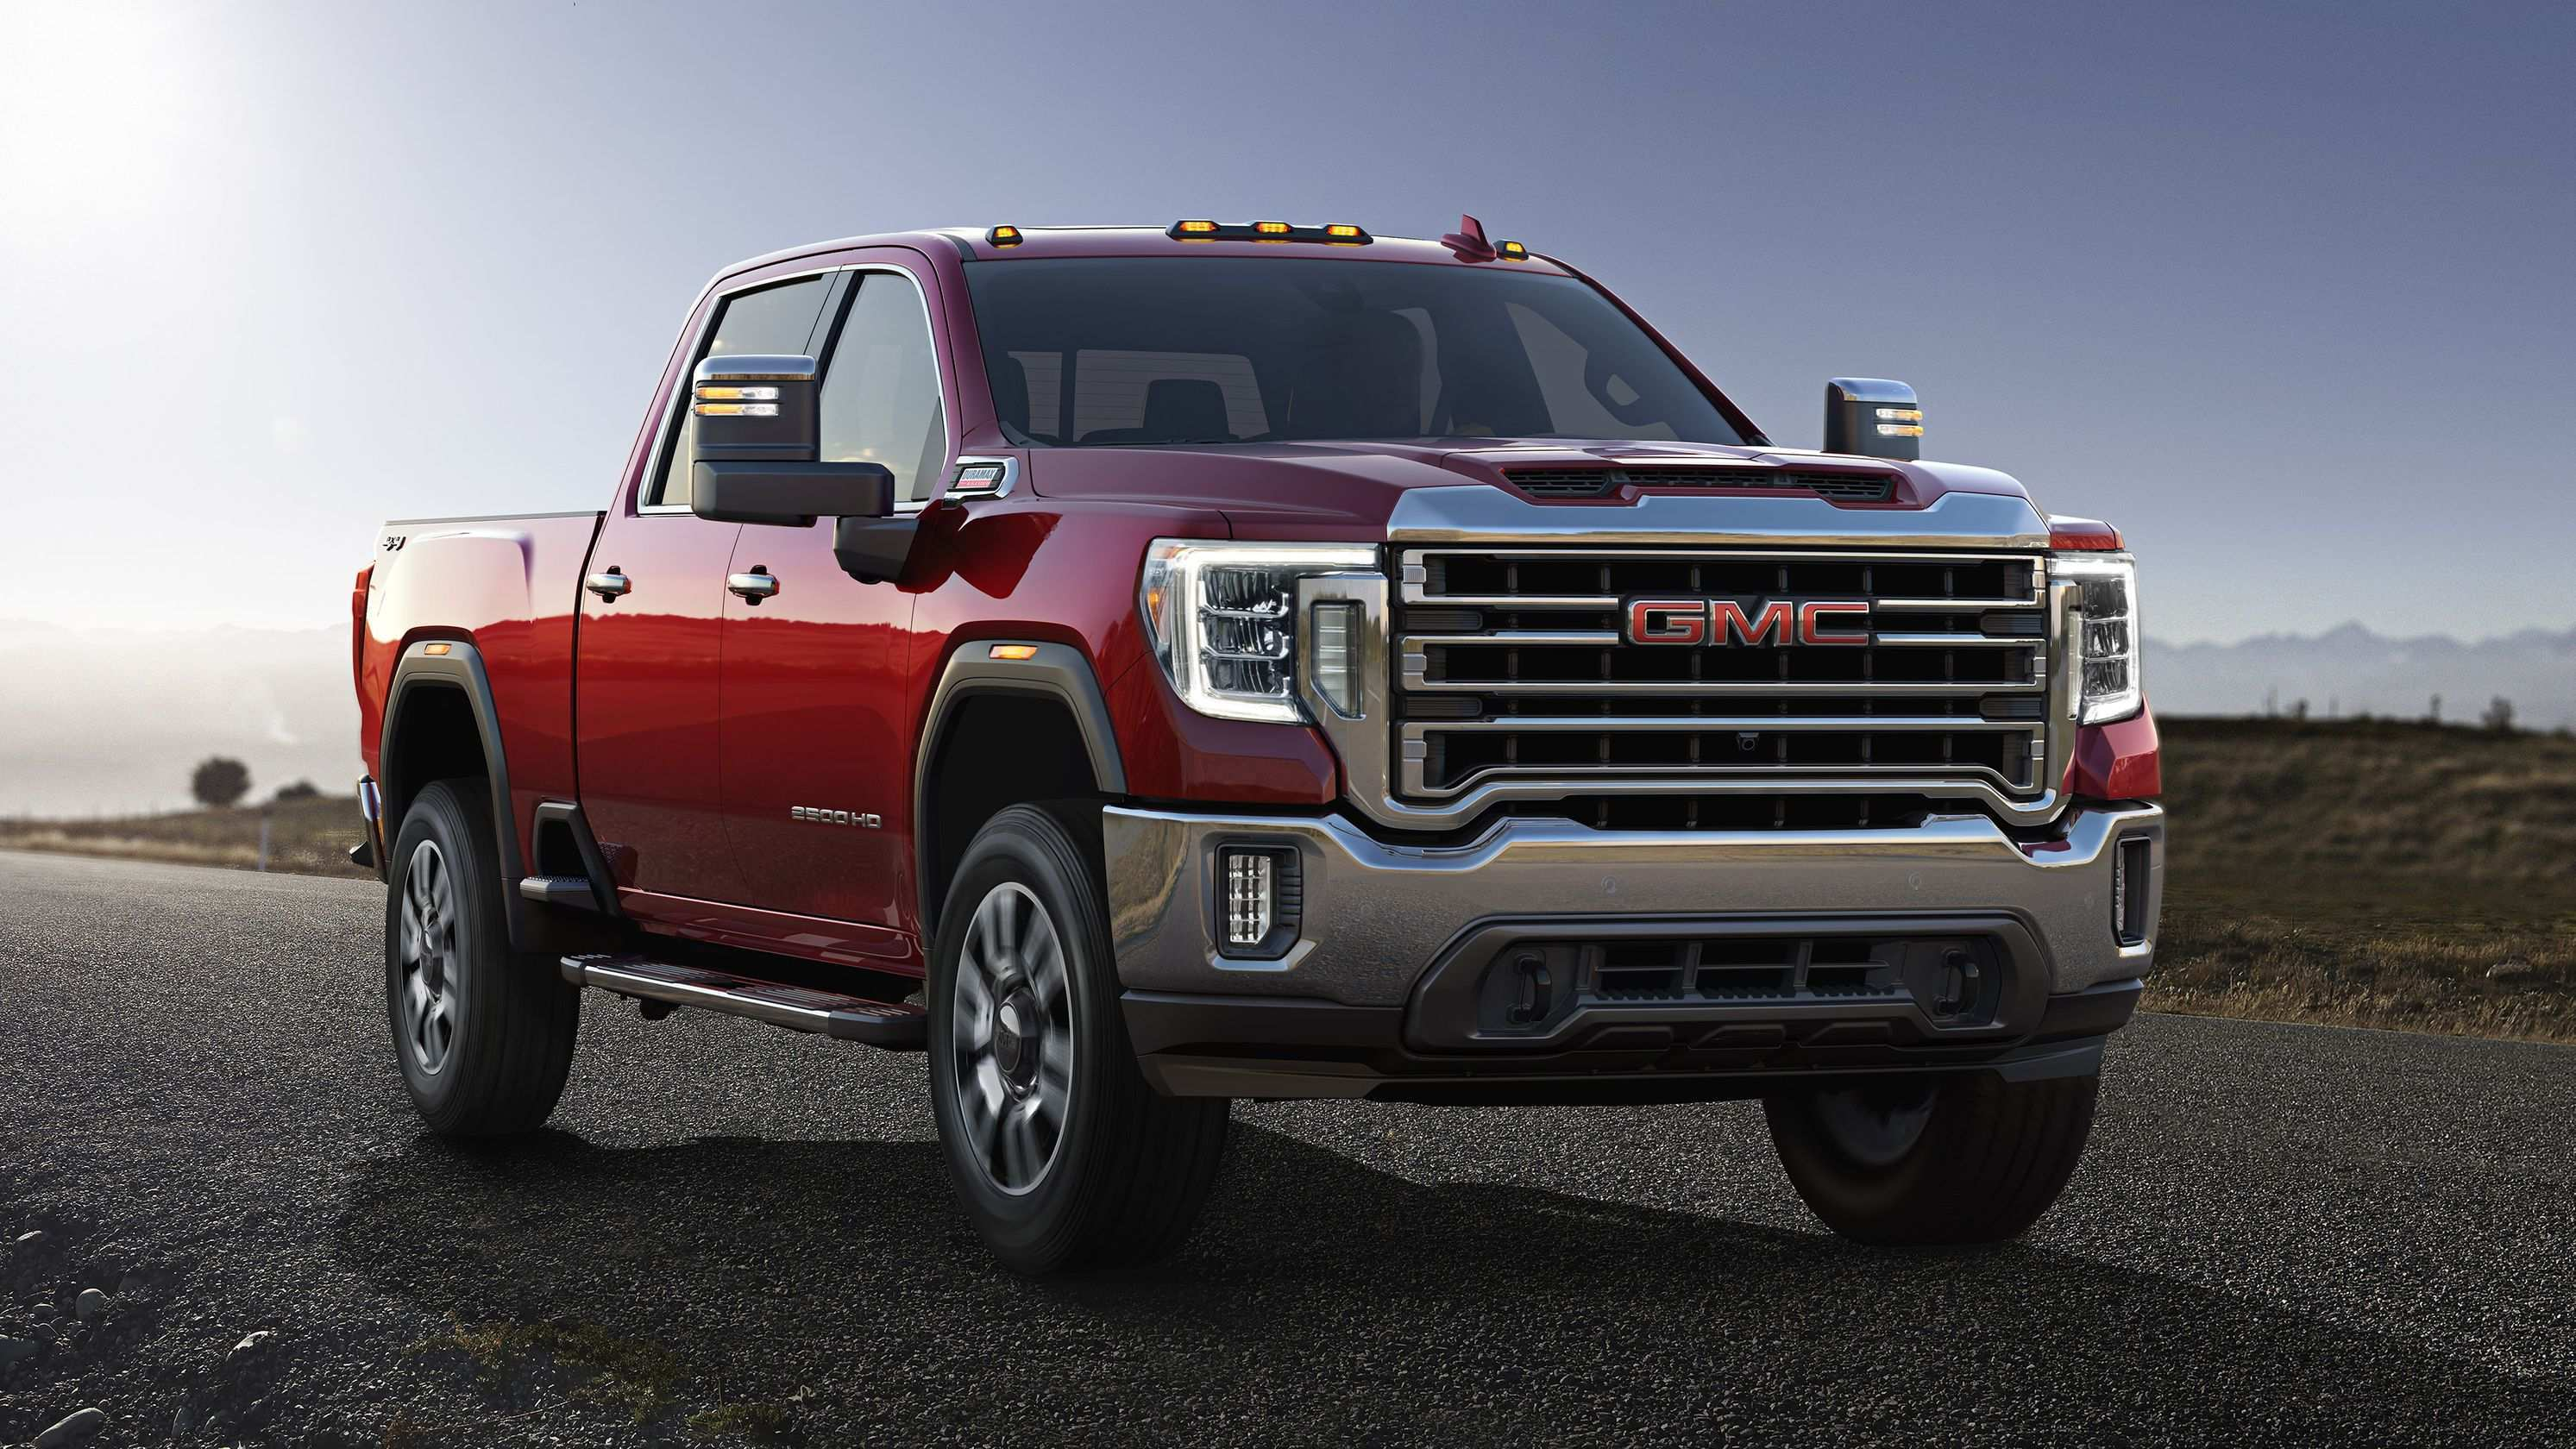 57 All New 2020 GMC Denali 3500Hd Reviews by 2020 GMC Denali 3500Hd